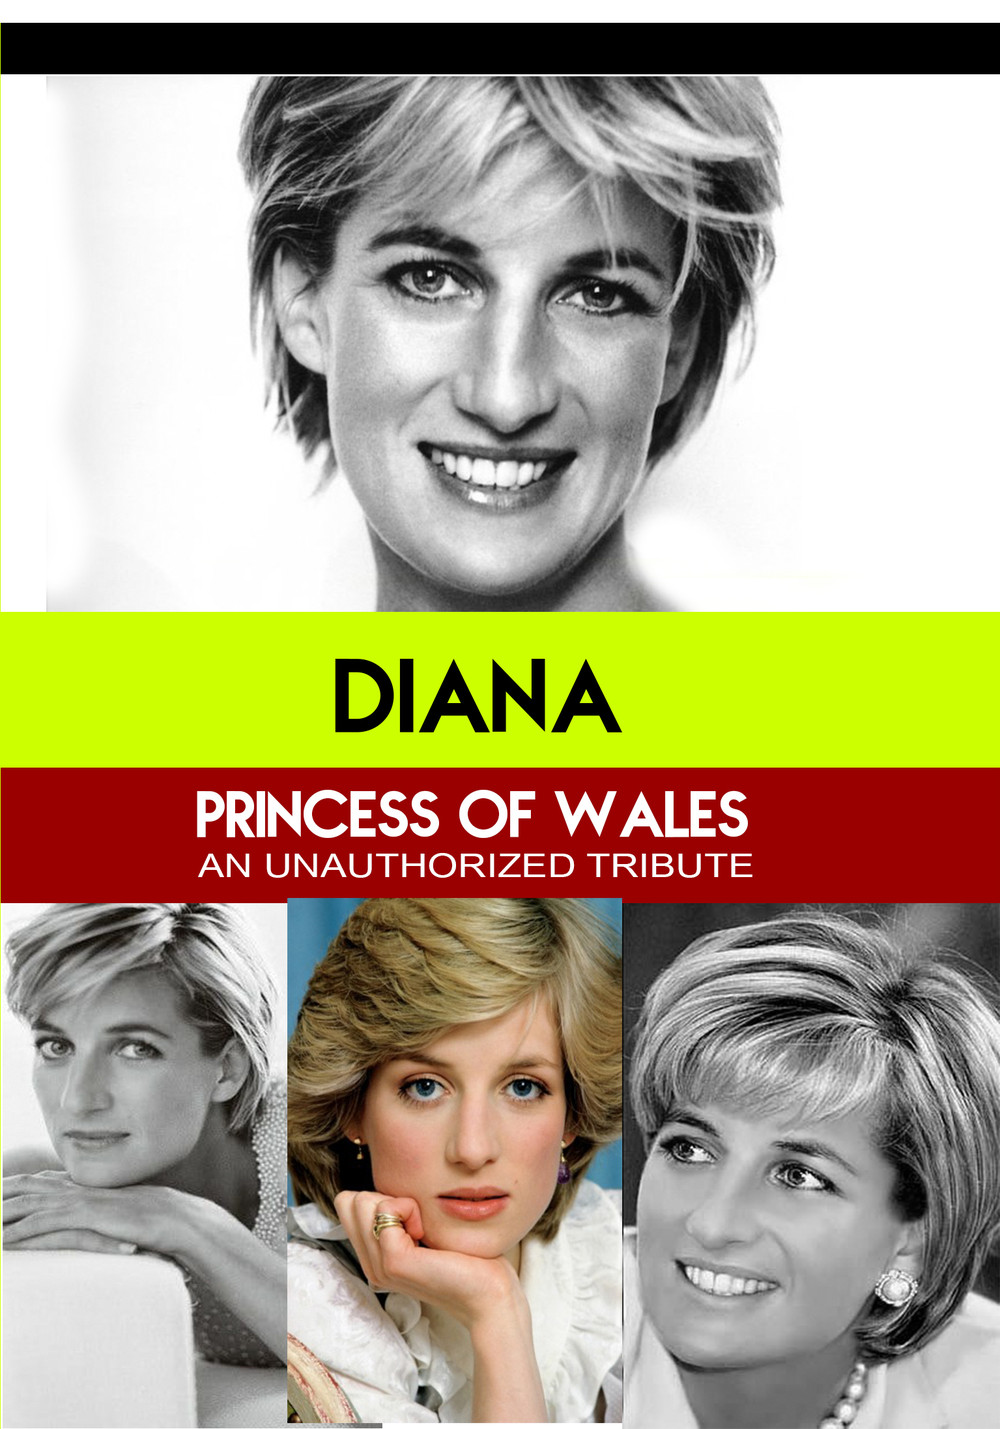 L7803 - Diana Princess of Wales - Everlasting An Unauthorized Tribute